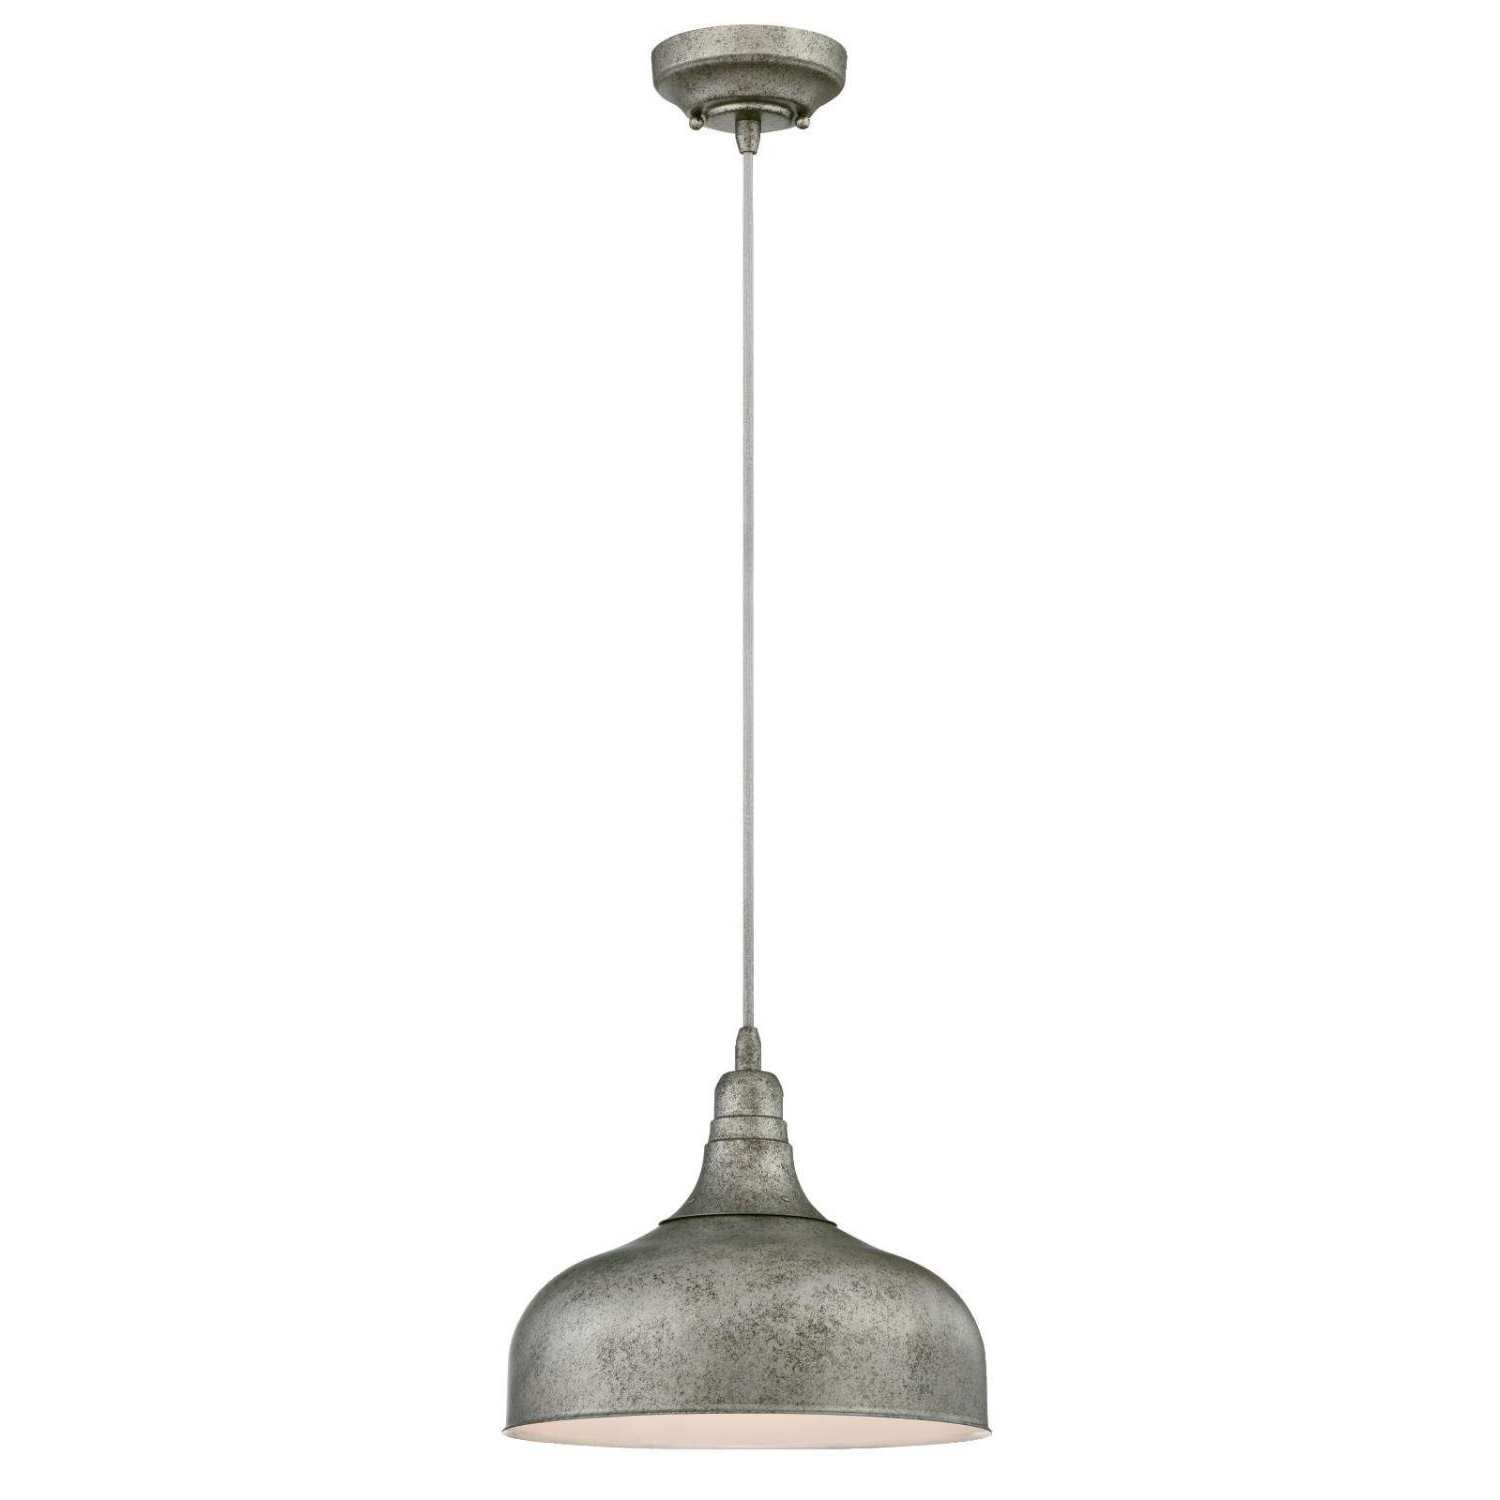 Burwan 1 Light Single Dome Pendant In Widely Used Hurst 1 Light Single Cylinder Pendants (View 8 of 25)